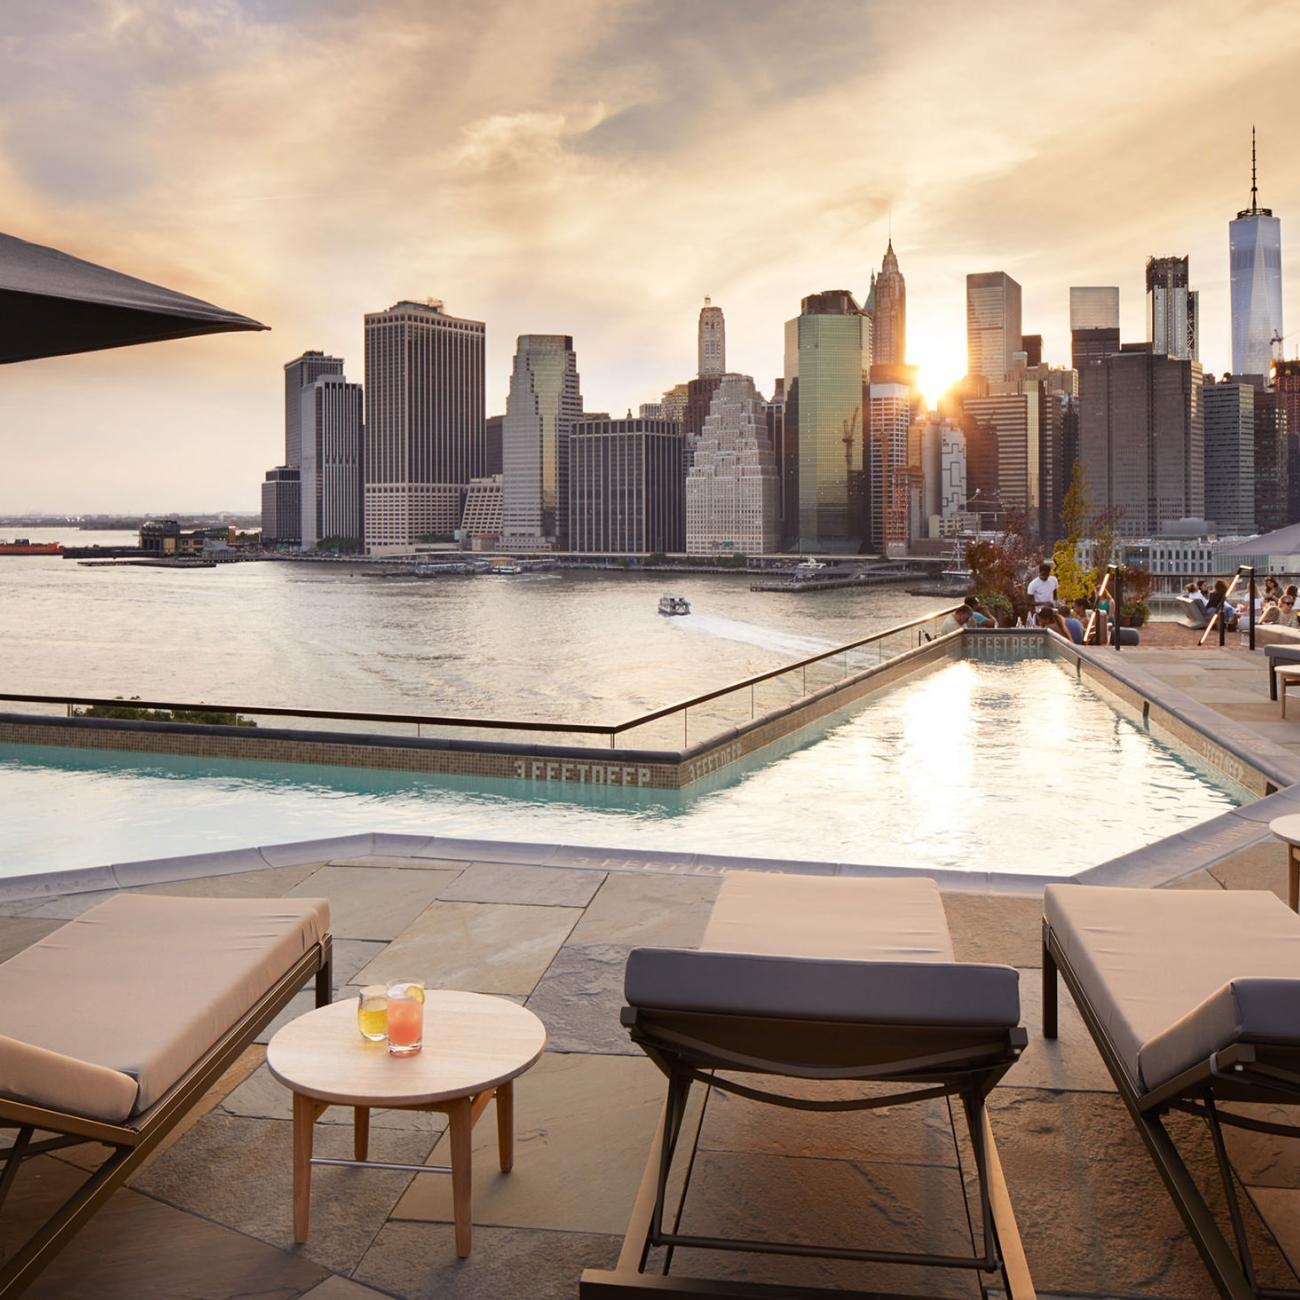 View of skyline next to pool at rooftop brooklyn bridge